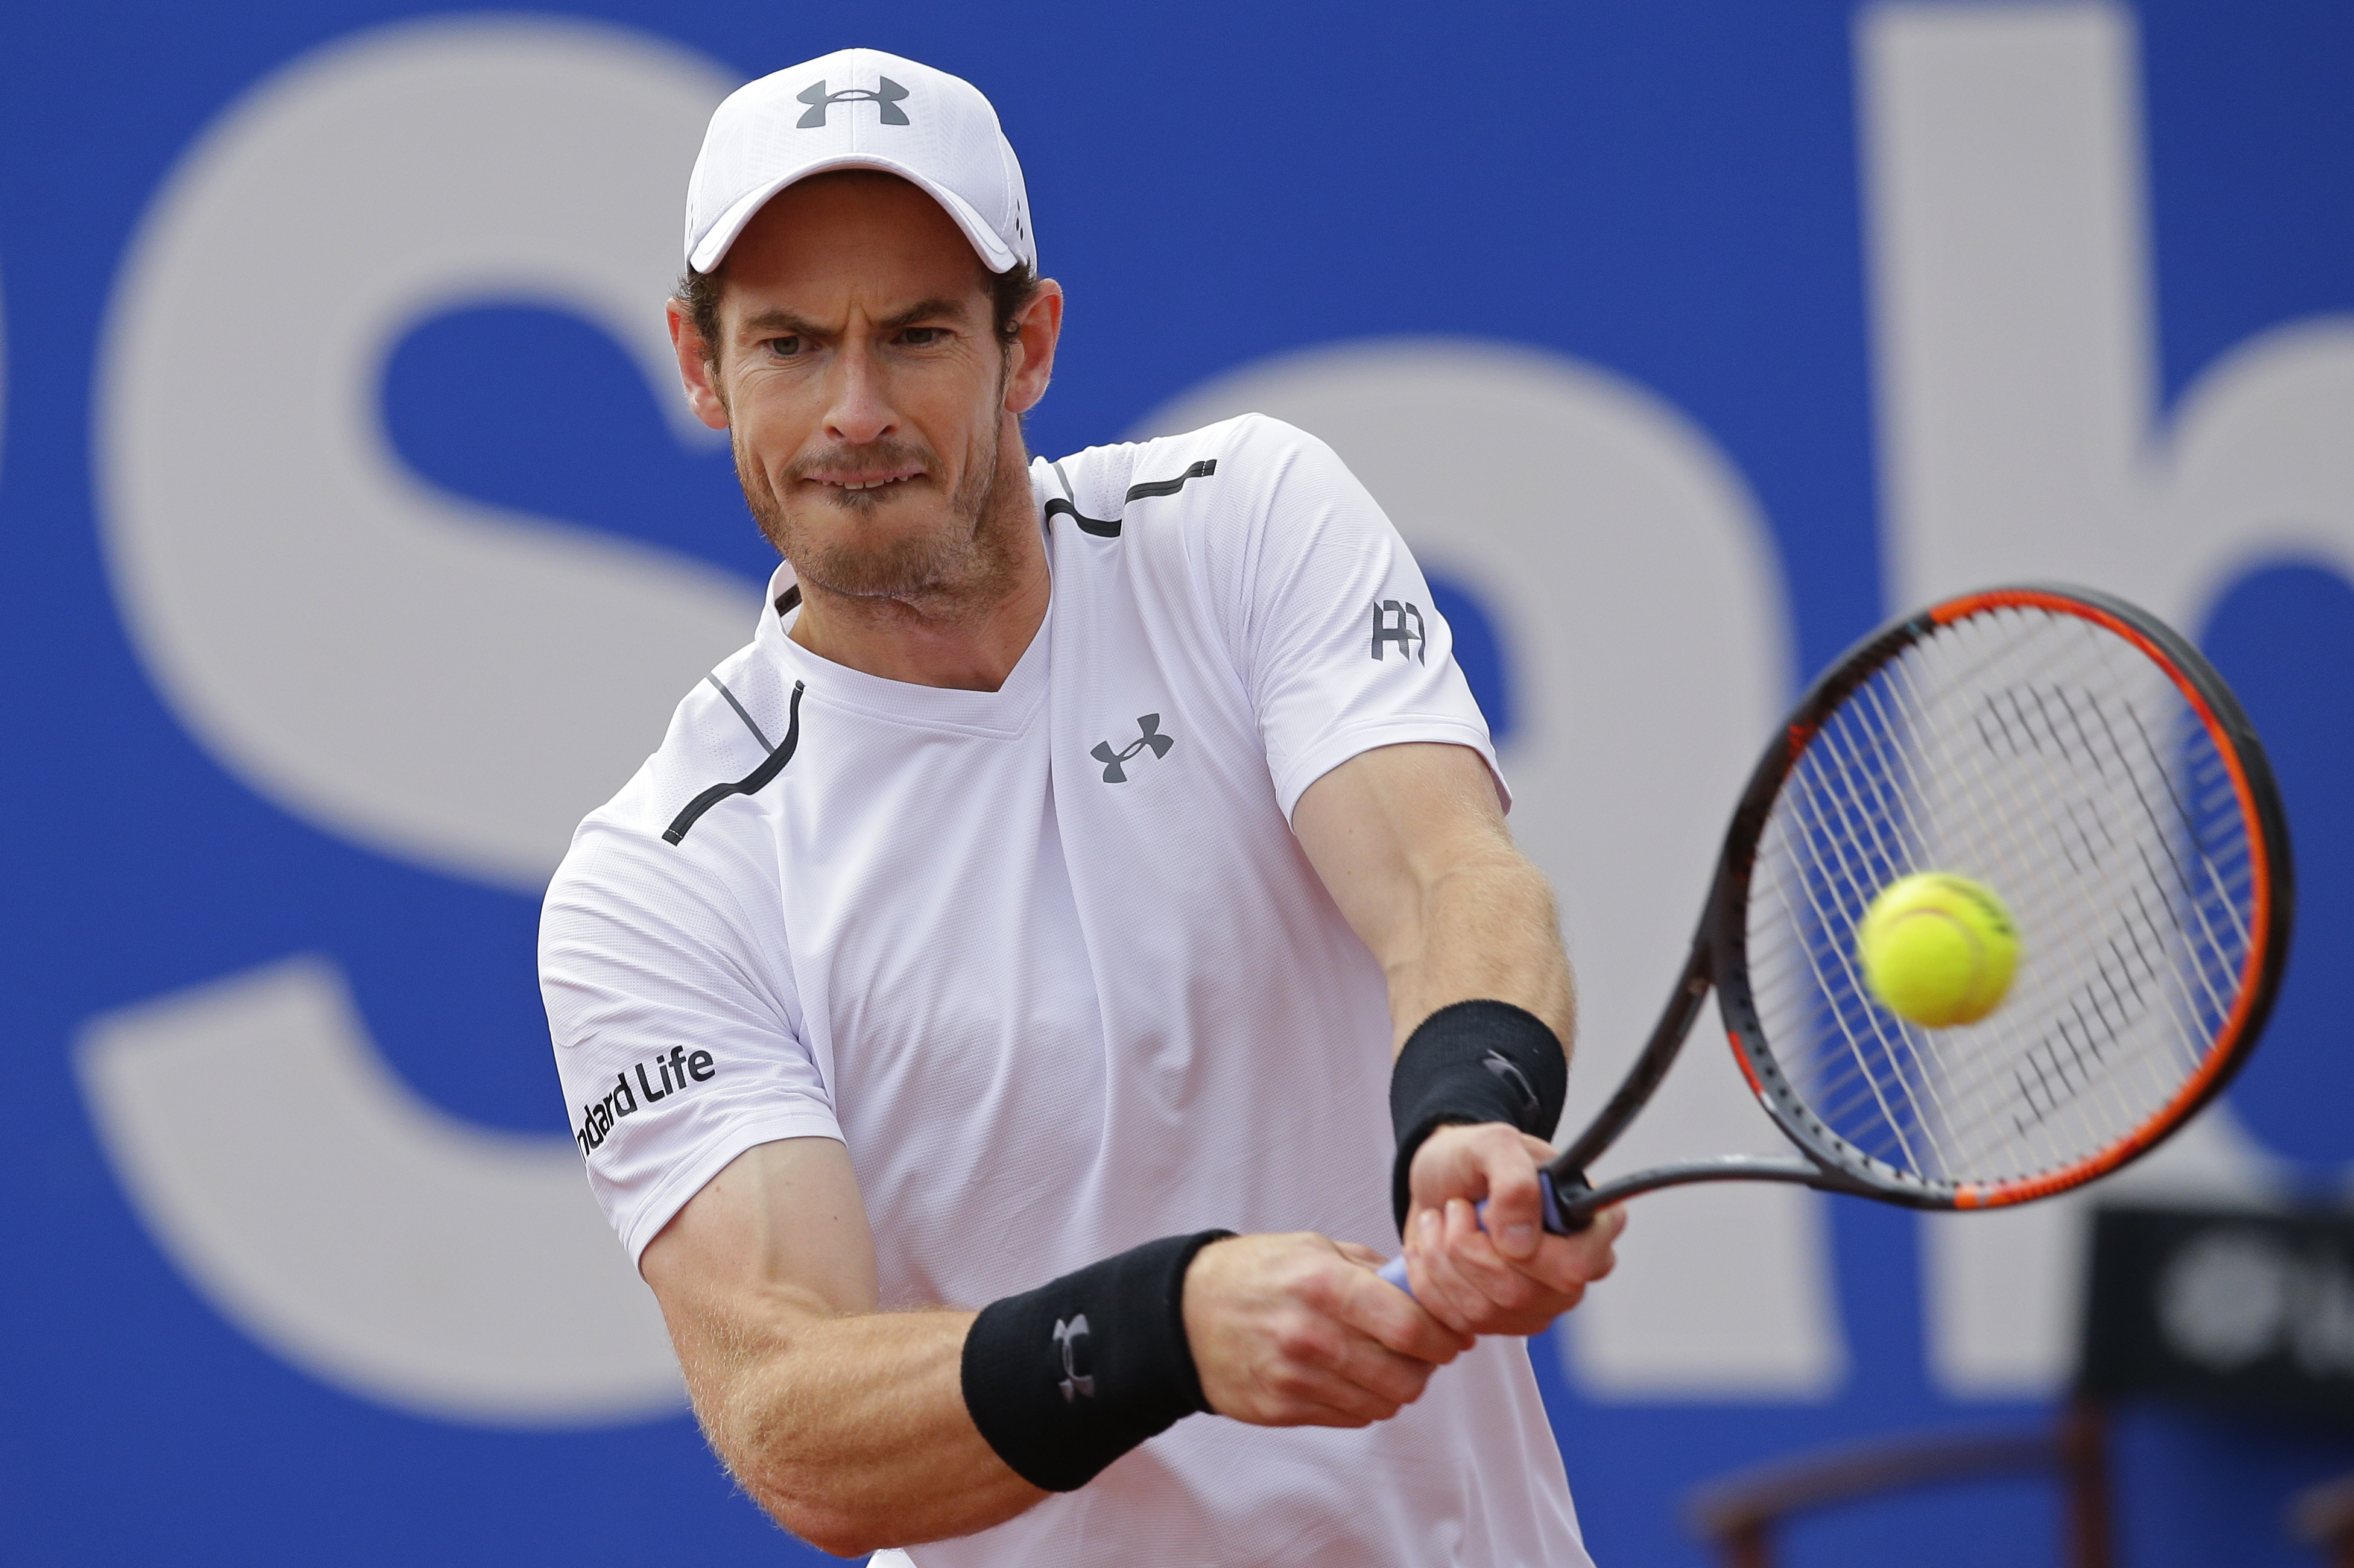 Andy Murray of Britain returns the ball to Feliciano Lopez of Spain during the Barcelona Open Tennis Tournament in Barcelona, Spain, Thursday, April 27, 2017. (AP Photo/Manu Fernandez)